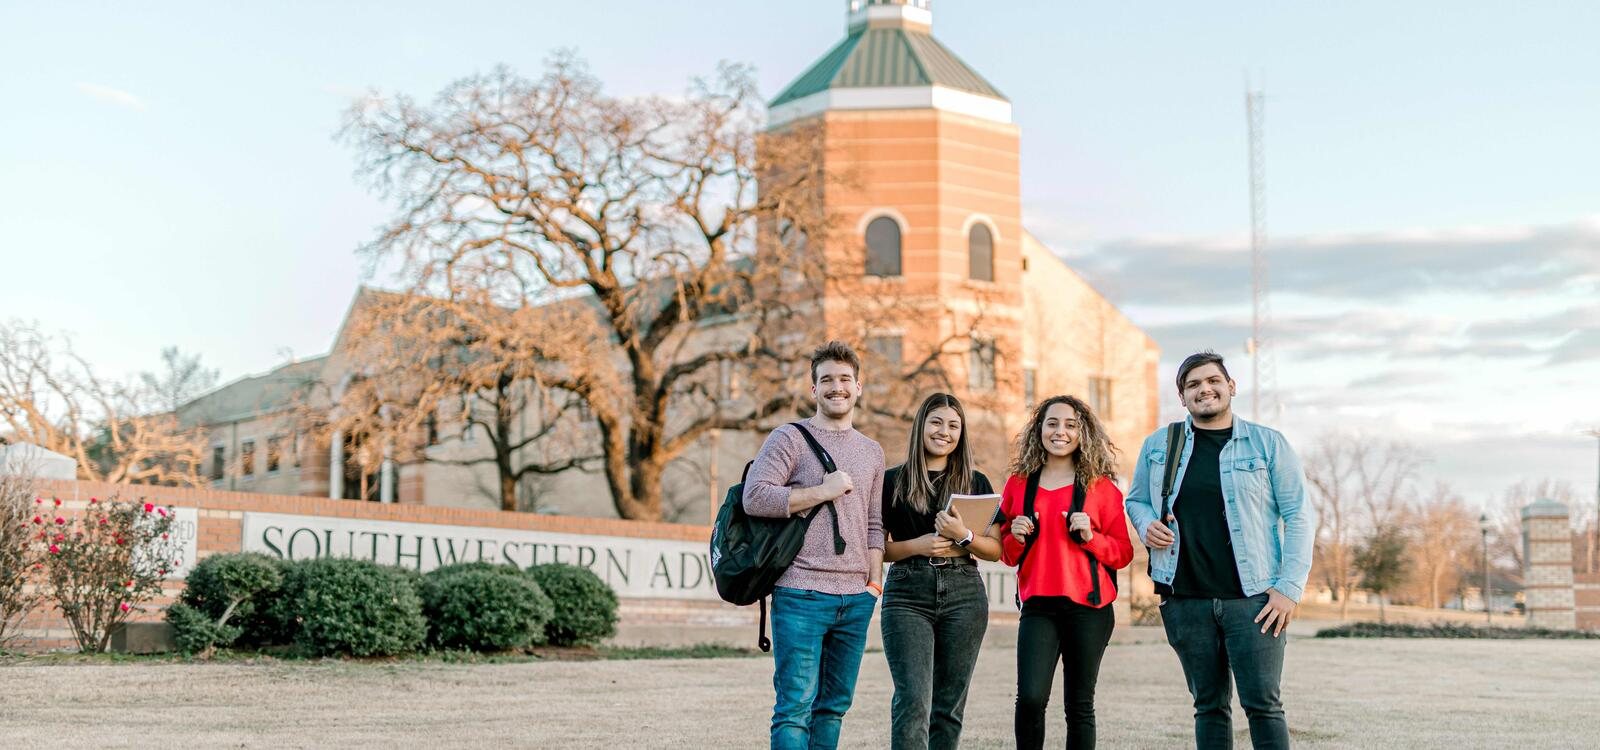 """Four students, with backpacks, smile together as they stand in front of a bricked sign that reads """" Southwestern Adventist University"""""""